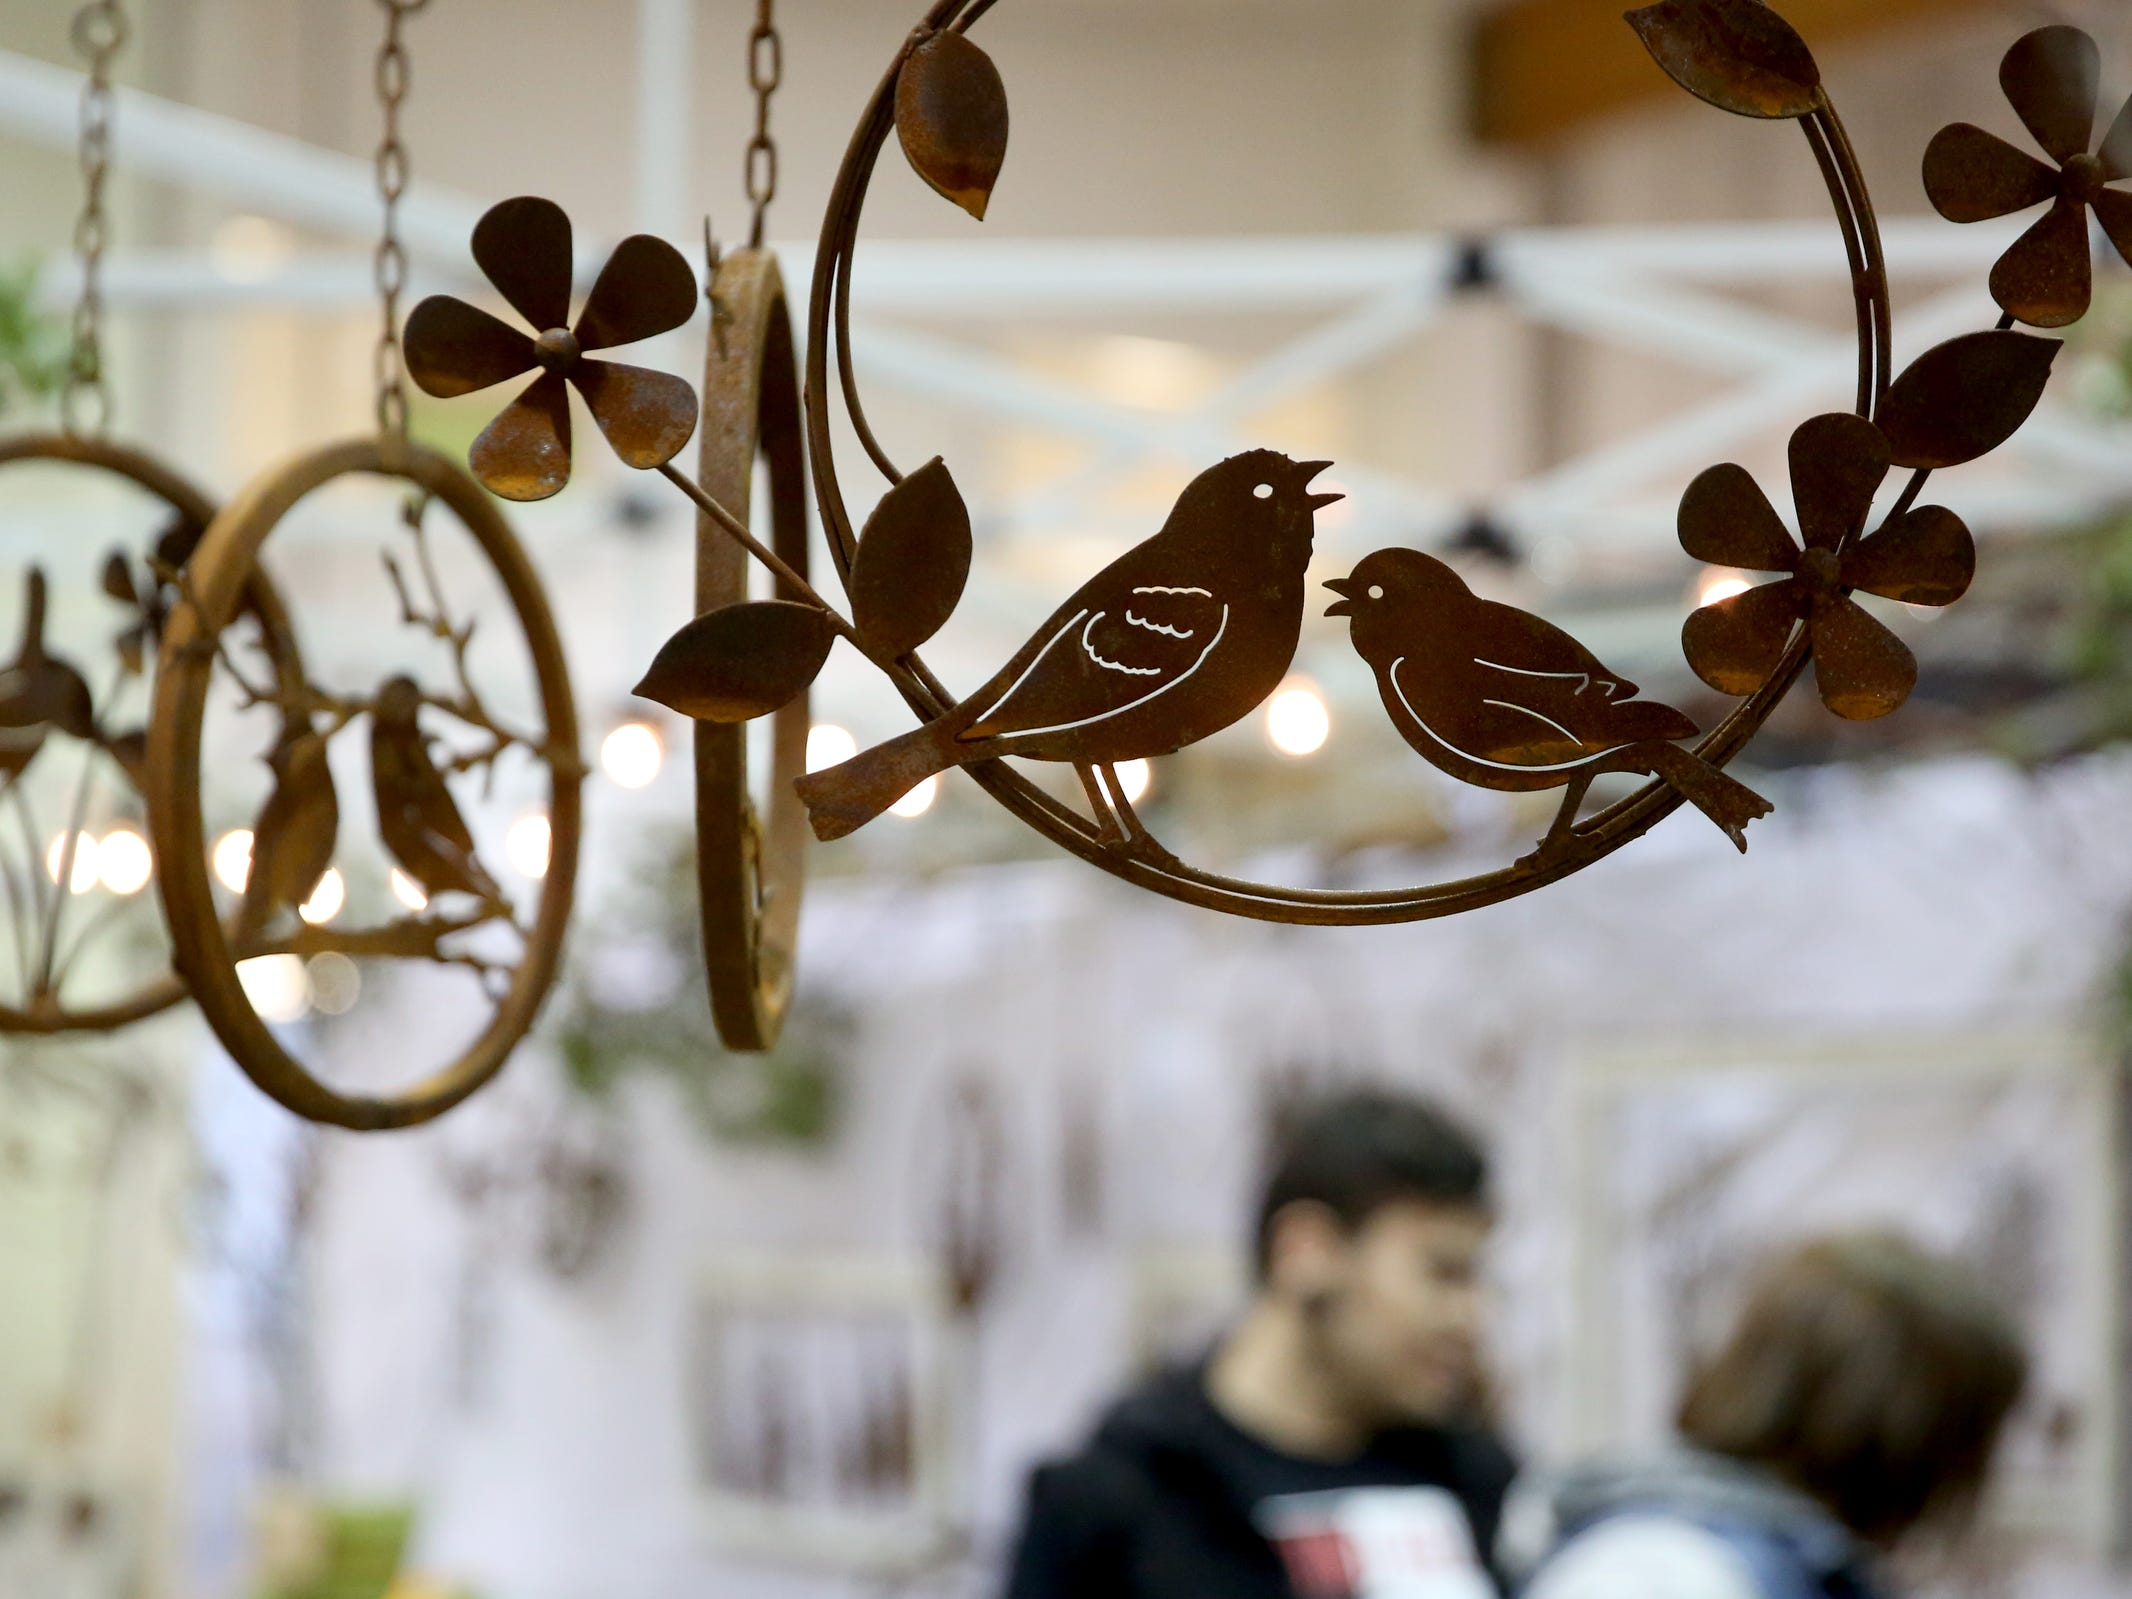 Metal yard art is available during The Great Junk Hunt, a traveling vintage market, at the Oregon State Fairgrounds in Salem on April 13, 2019.